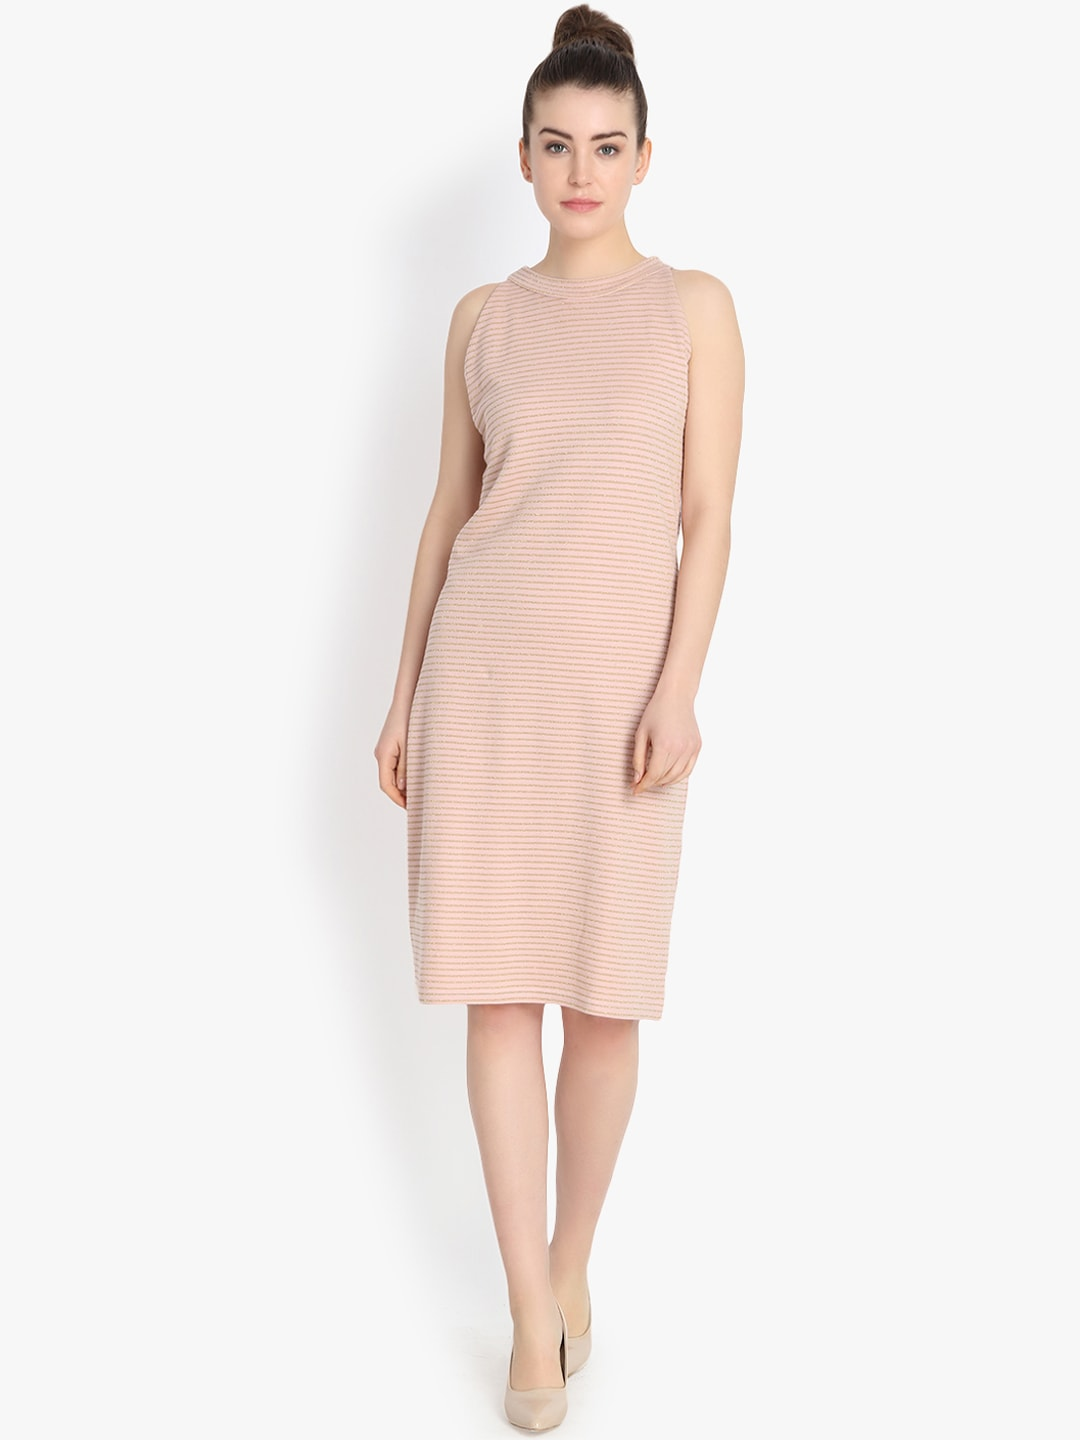 b529099a5cc Cocktail Dress - Buy Cocktail Dresses for Women   Girls Online